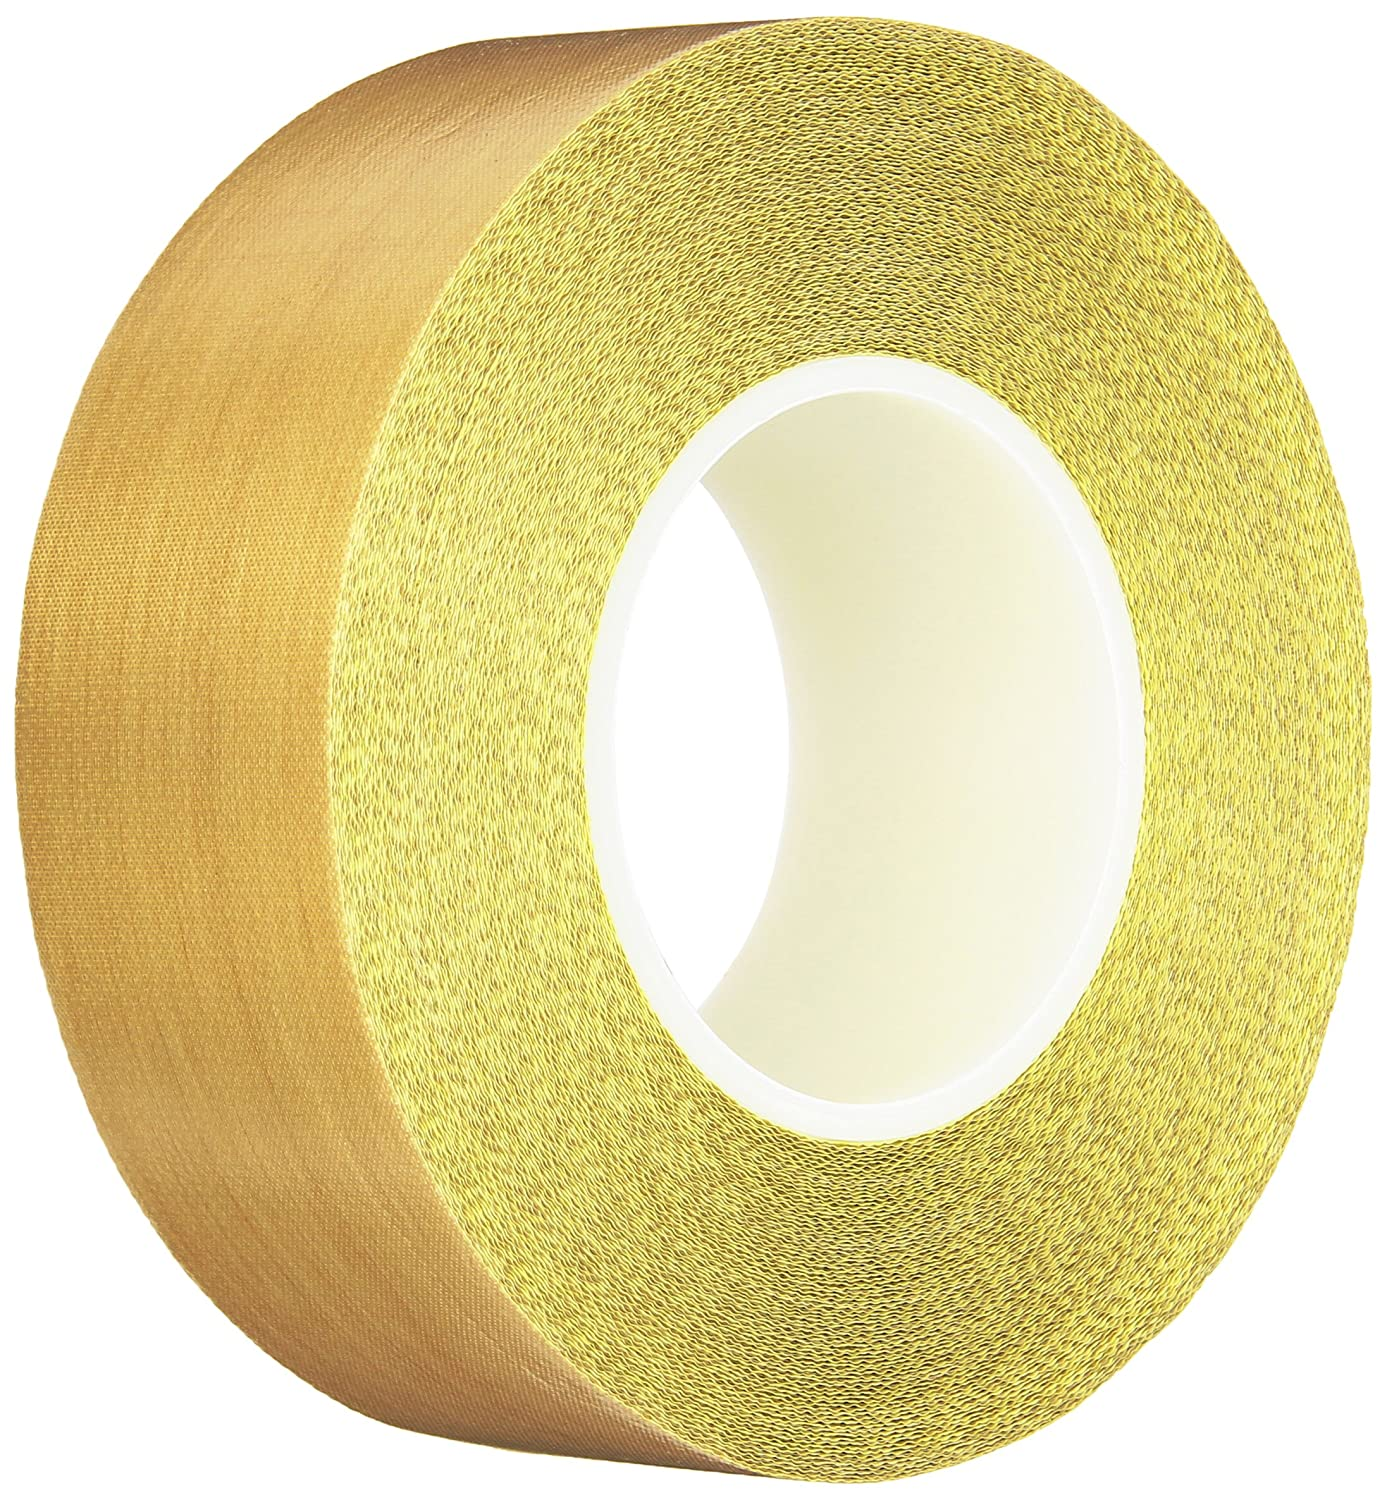 2 x 36 Yards Teflon 21-3S Teflon Coated Tape Silicone Adhesive